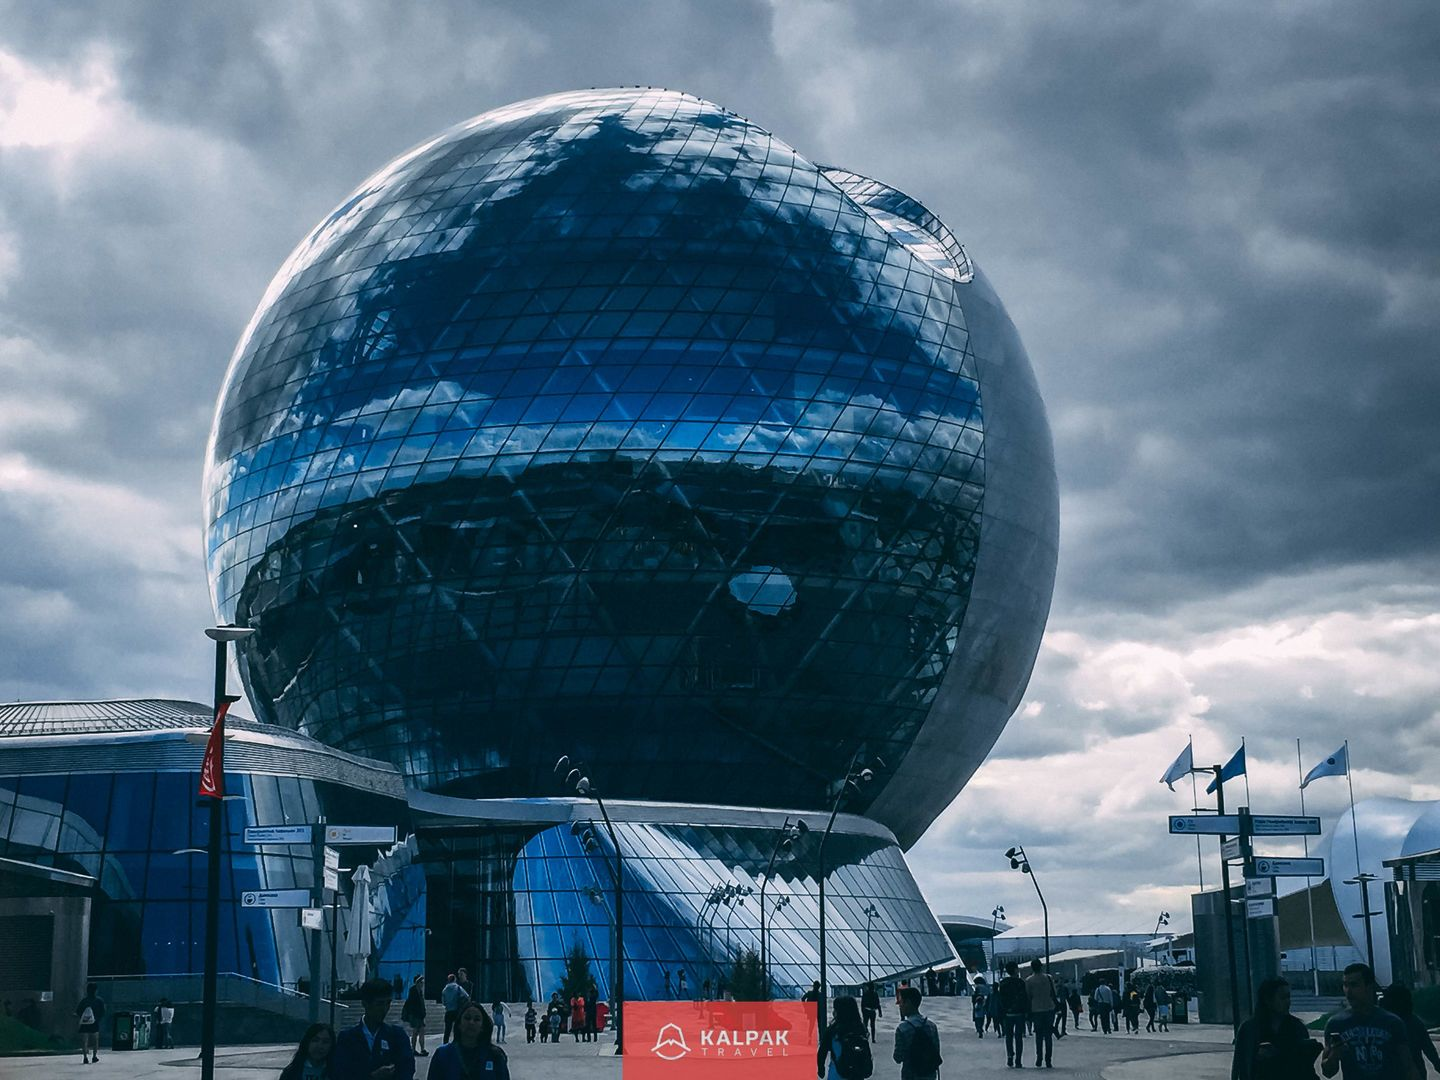 Central Asia capitals, Expo Sphere in Astana